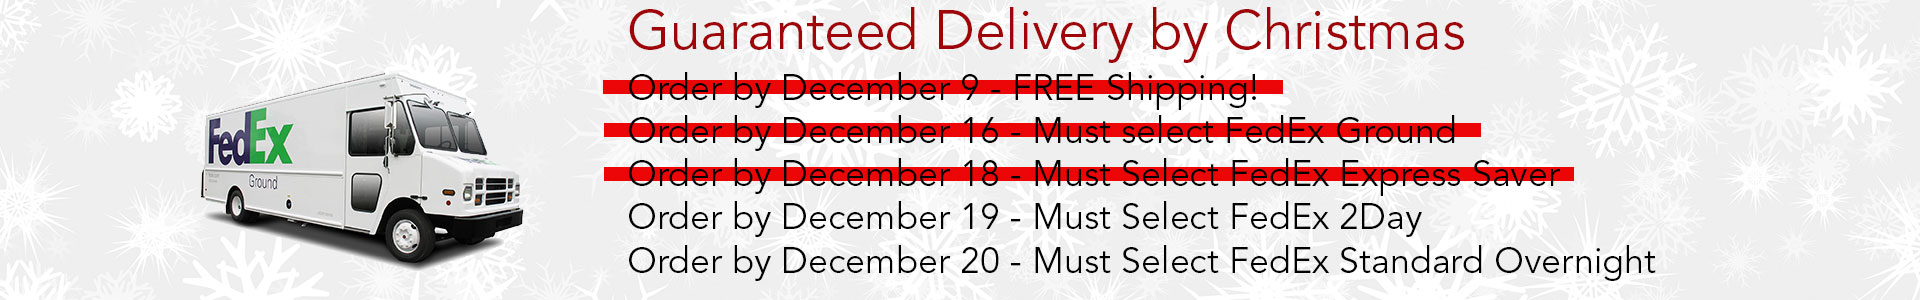 Guaranteed Delivery by Christmas | Trust Ambush Board Co.